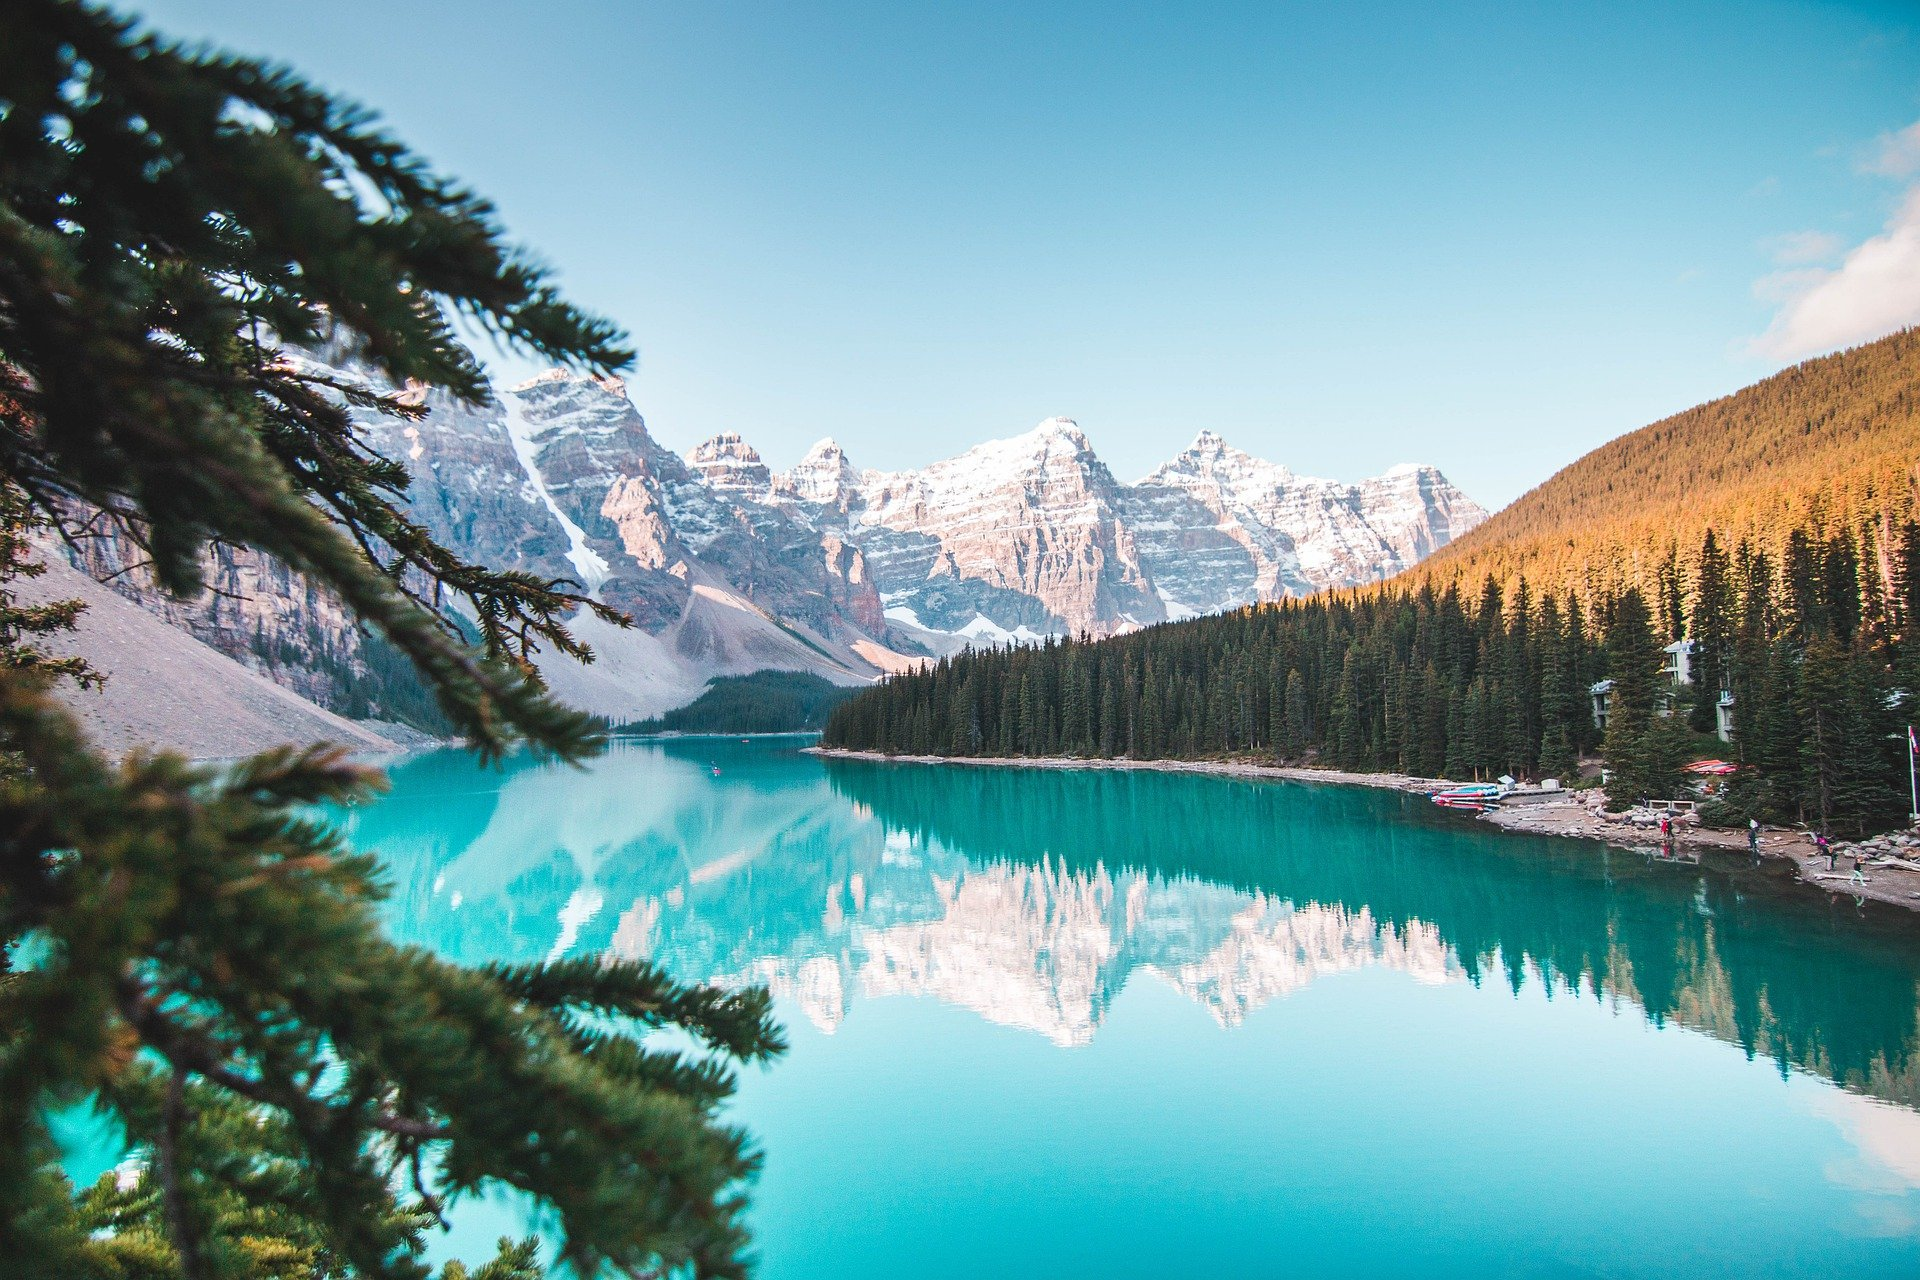 Most Beautiful Places in the World: turquoise waters at Banff in Canada